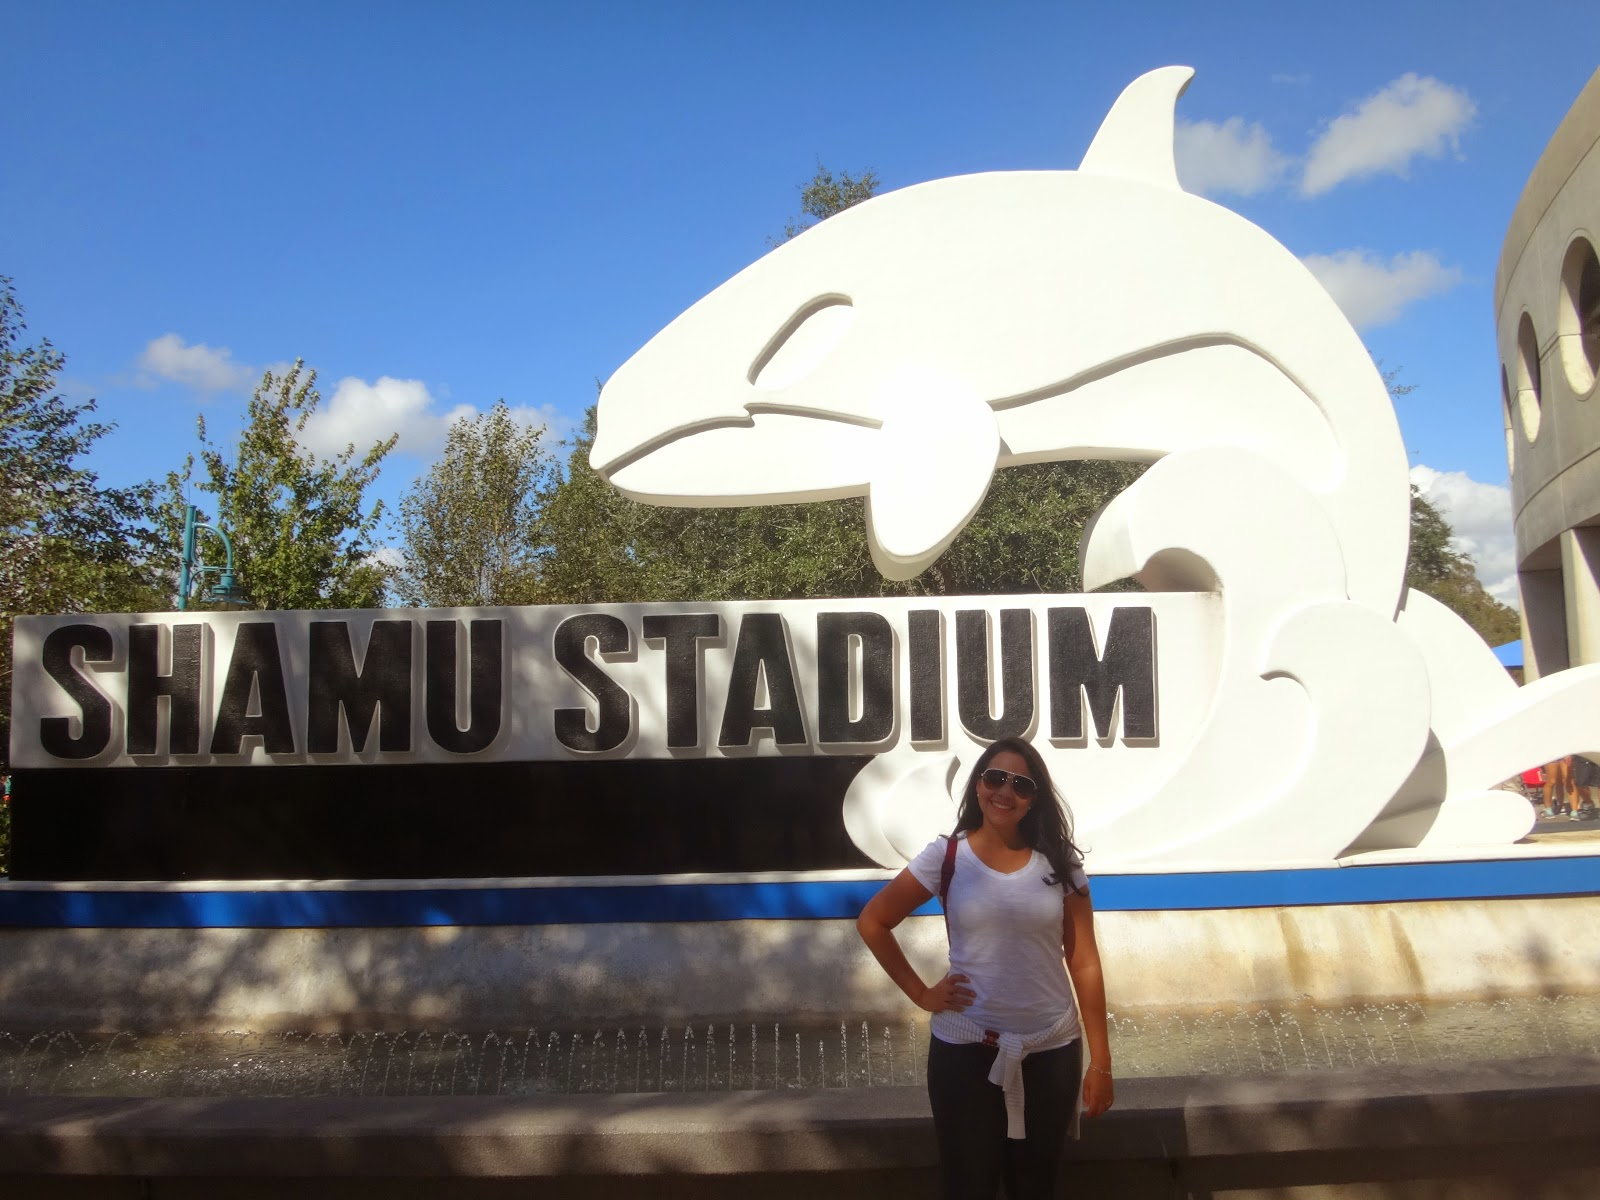 shamu stadium - Parque sea world - orlando, florida